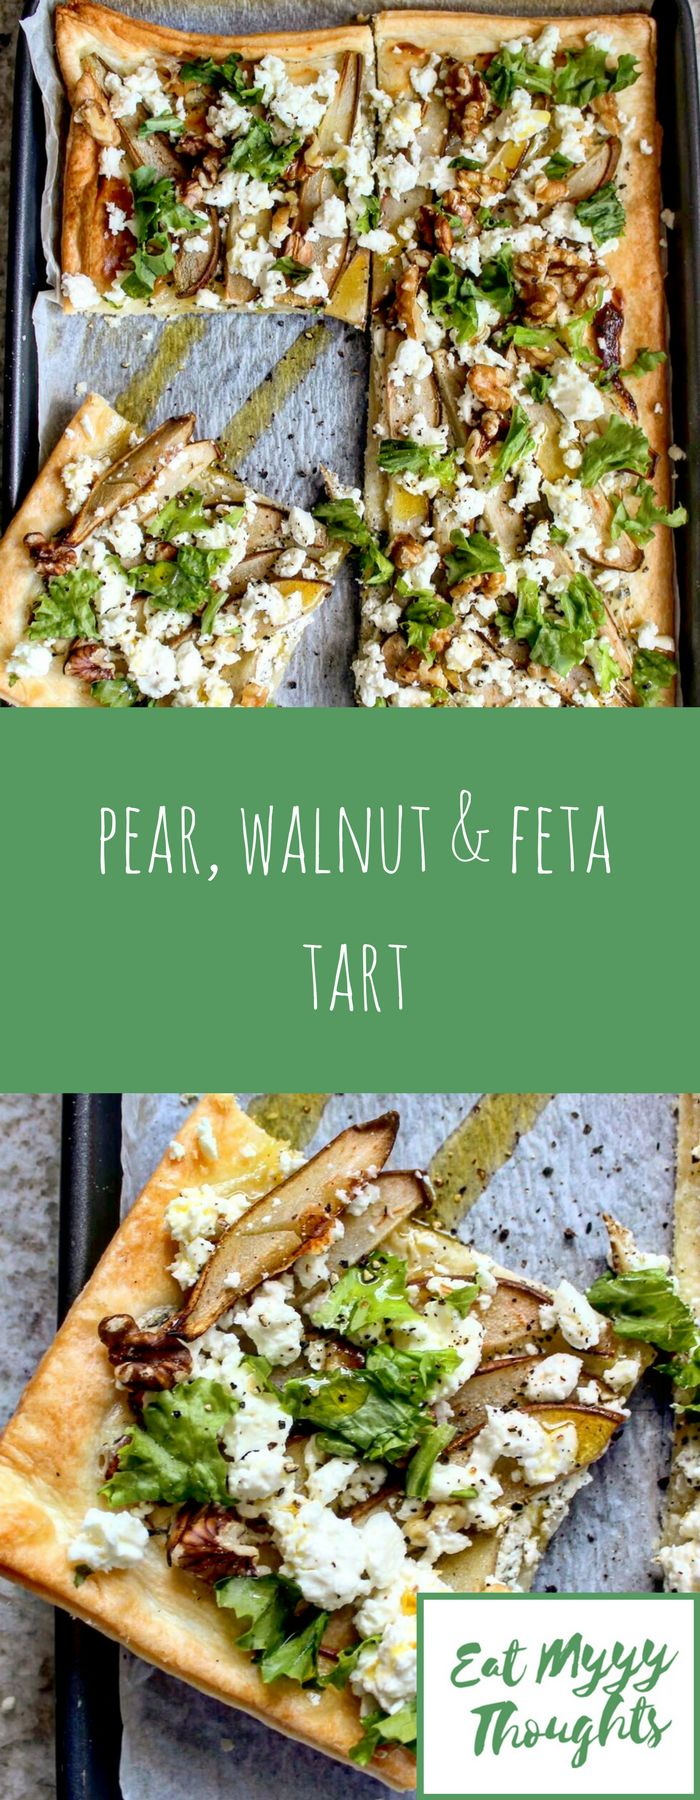 Pear, Walnut and Feta Tart - the perfect dish for autumn, but great at any time of year to use up pears that are a little past their best. It's also very quick and easy. Suitable for vegetarians.